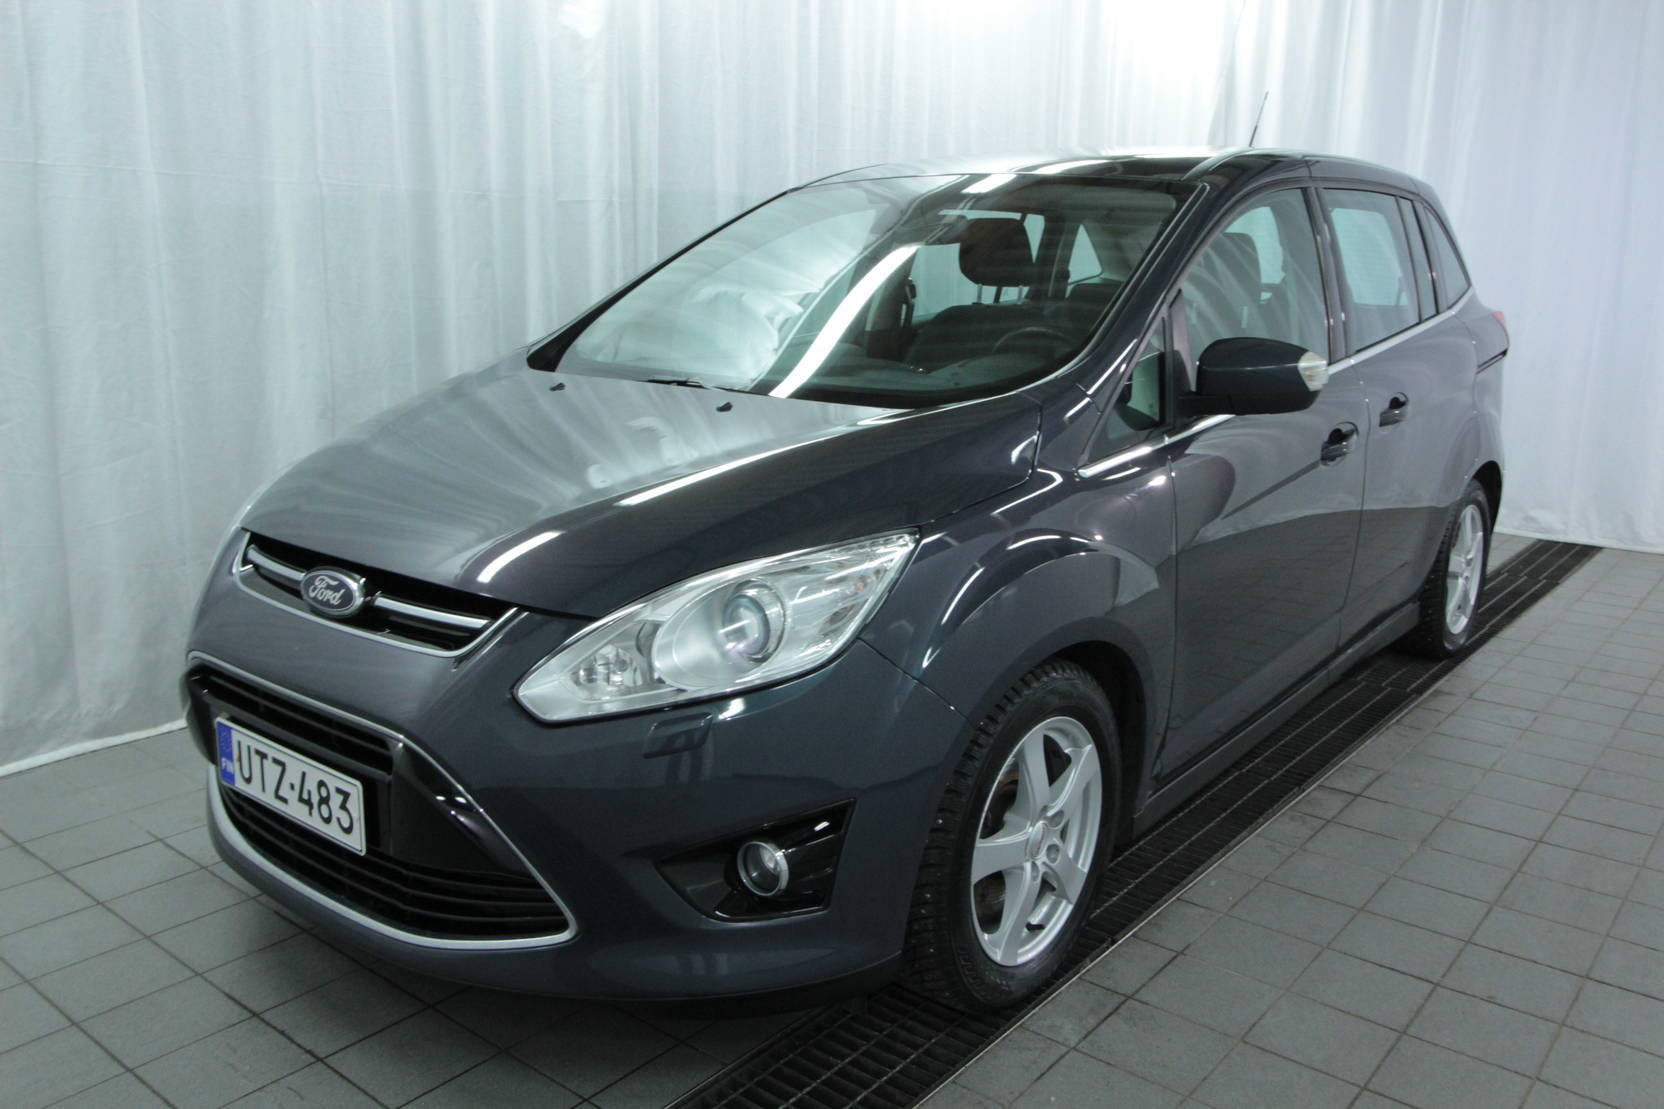 Ford Grand C-Max 2.0 Tdci 163 Hv Powershift Aut Titanium detail1